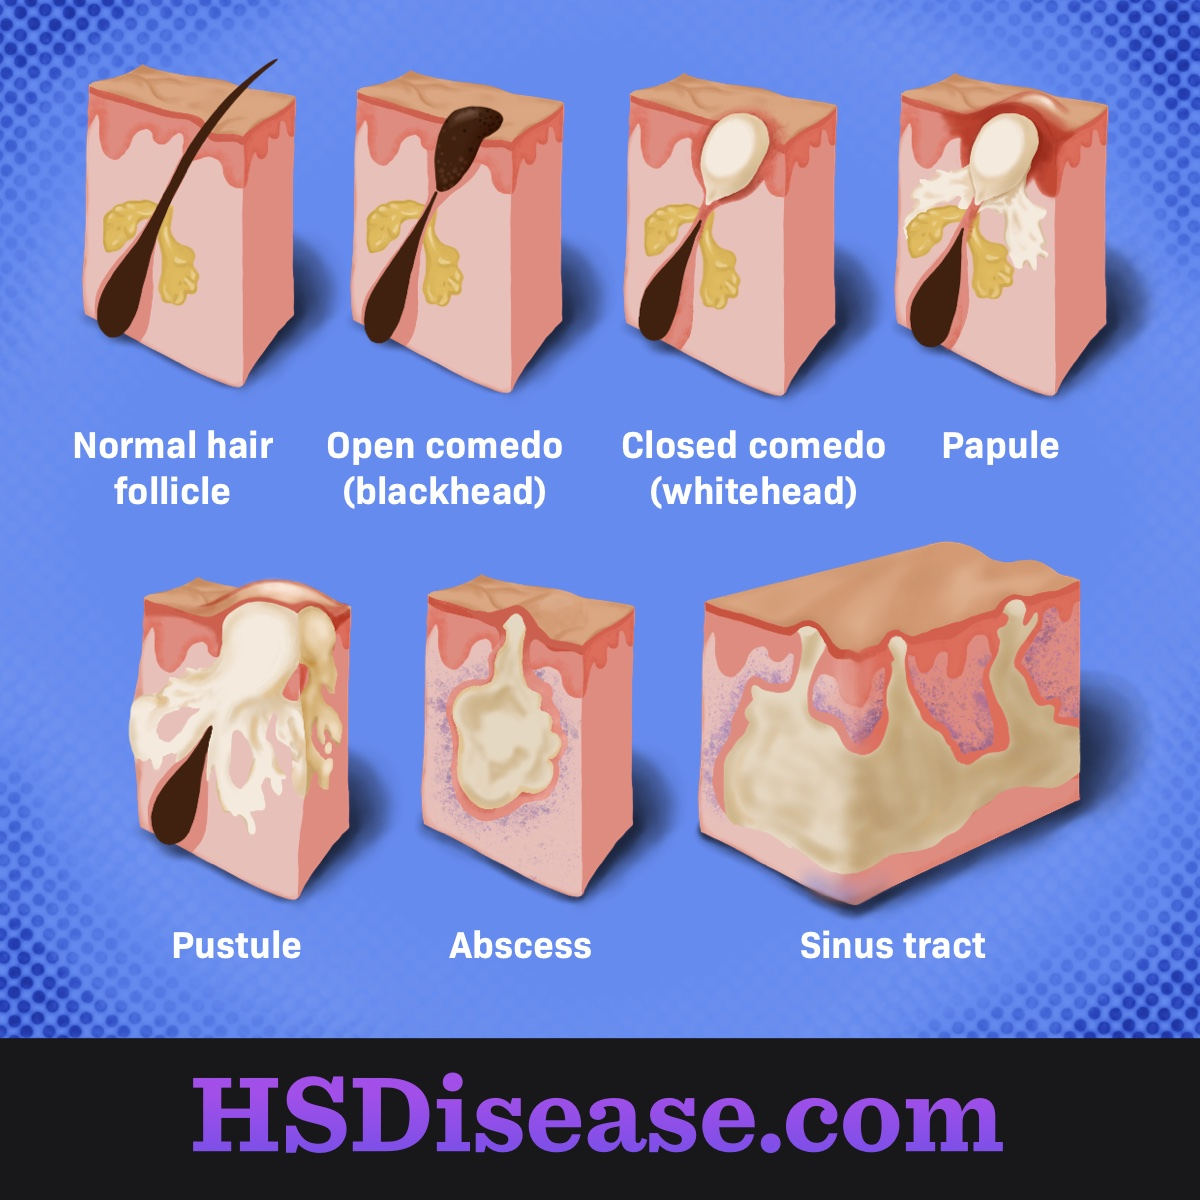 Types of bumps and lumps associated with HS.